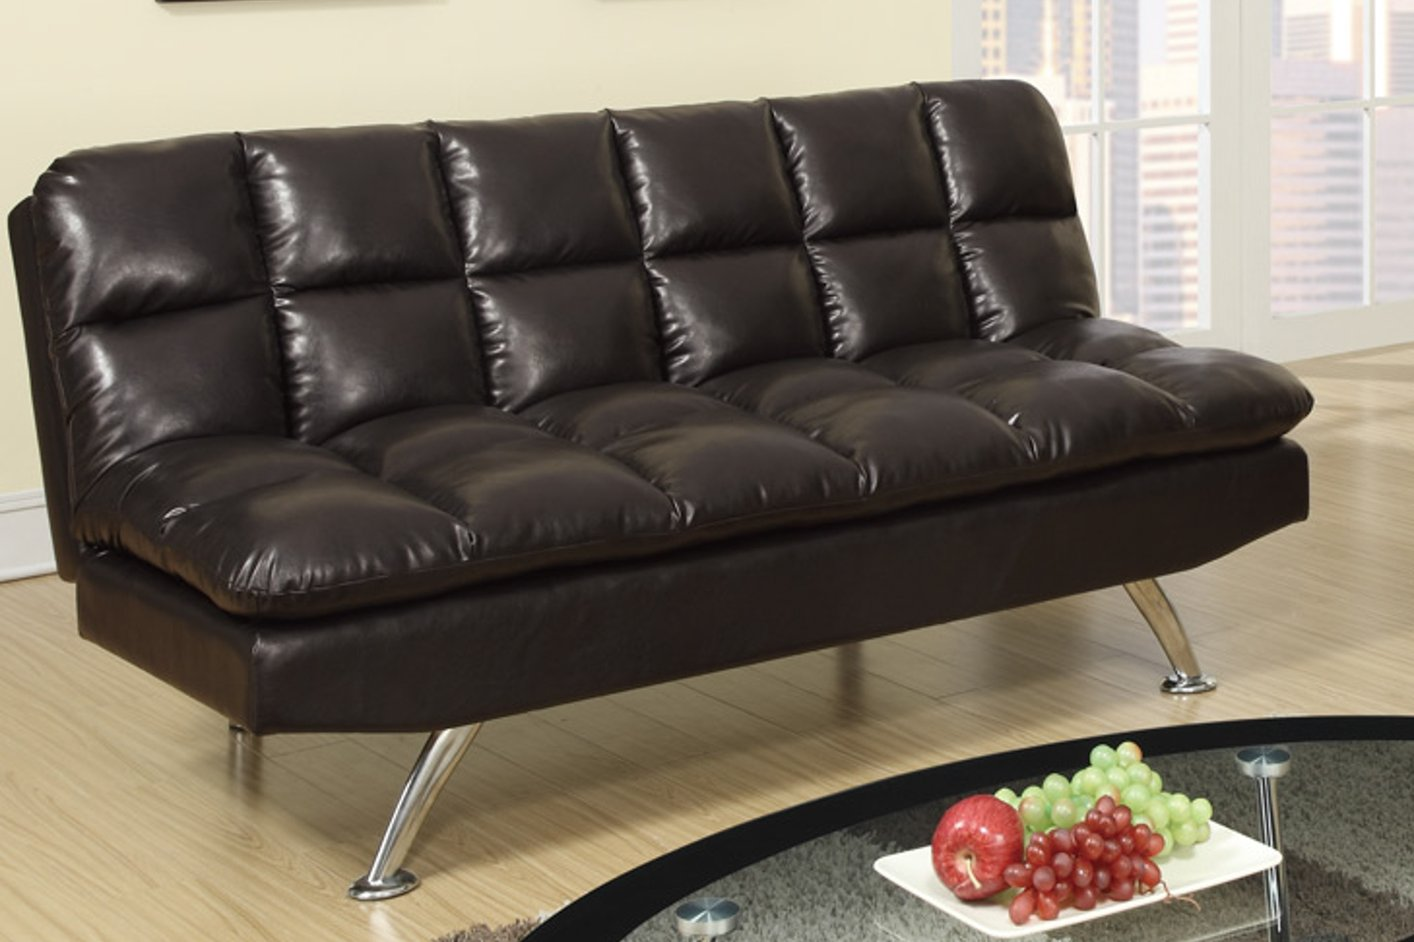 Brown Leather Twin Size Sofa Bed Steal A Furniture Outlet Los Angeles Ca